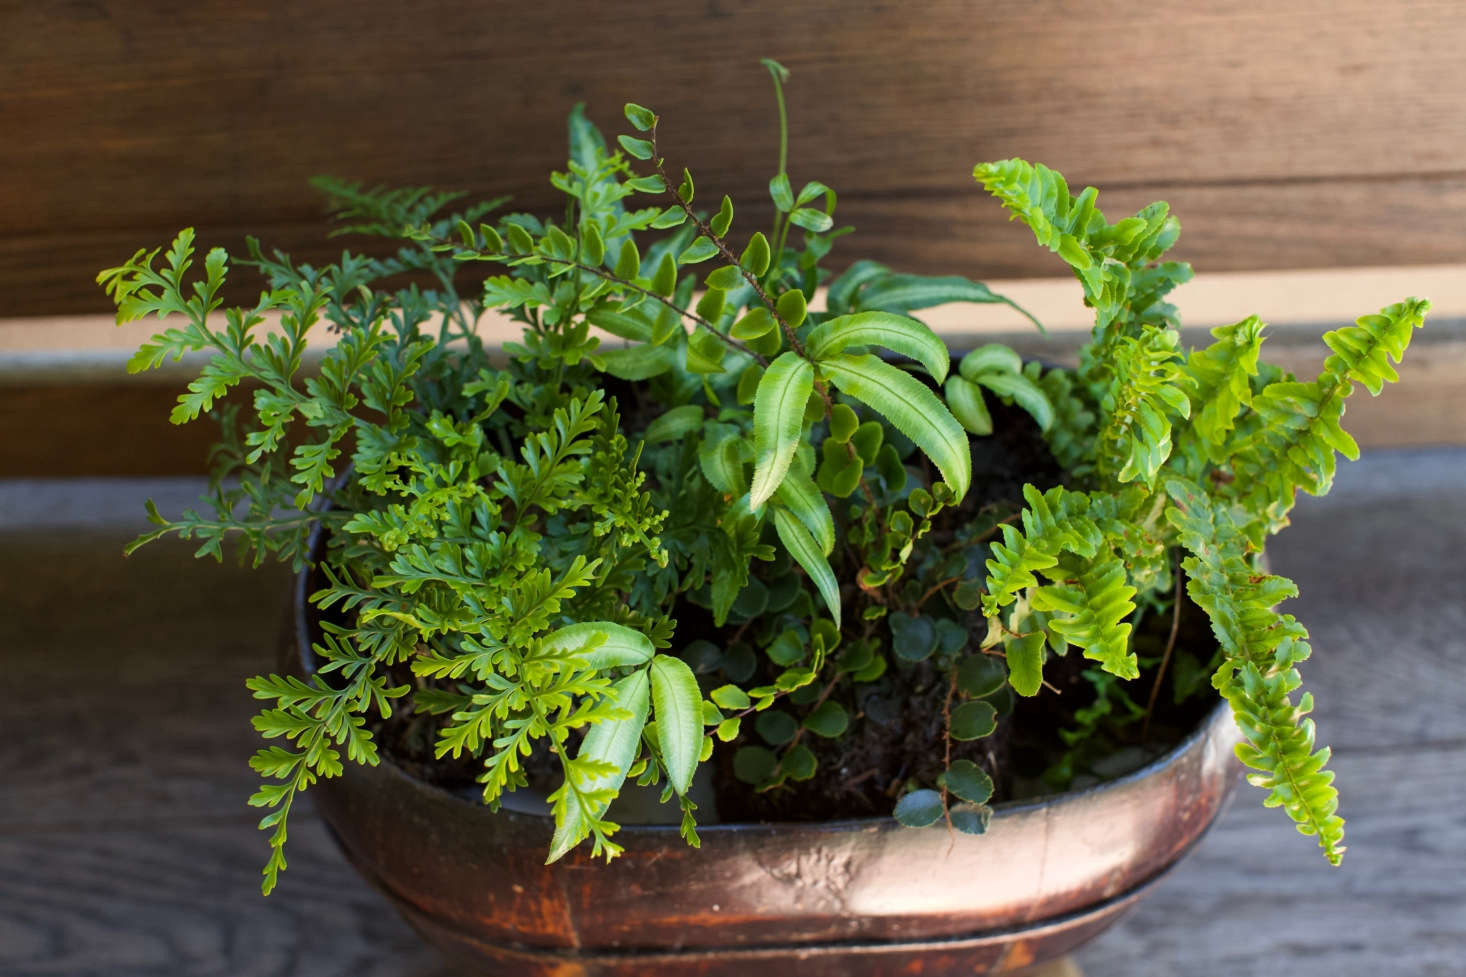 Asplenium bulbiferum (at left) is commonly known as mother spleenwort fern and also is a good choice for a shade garden.